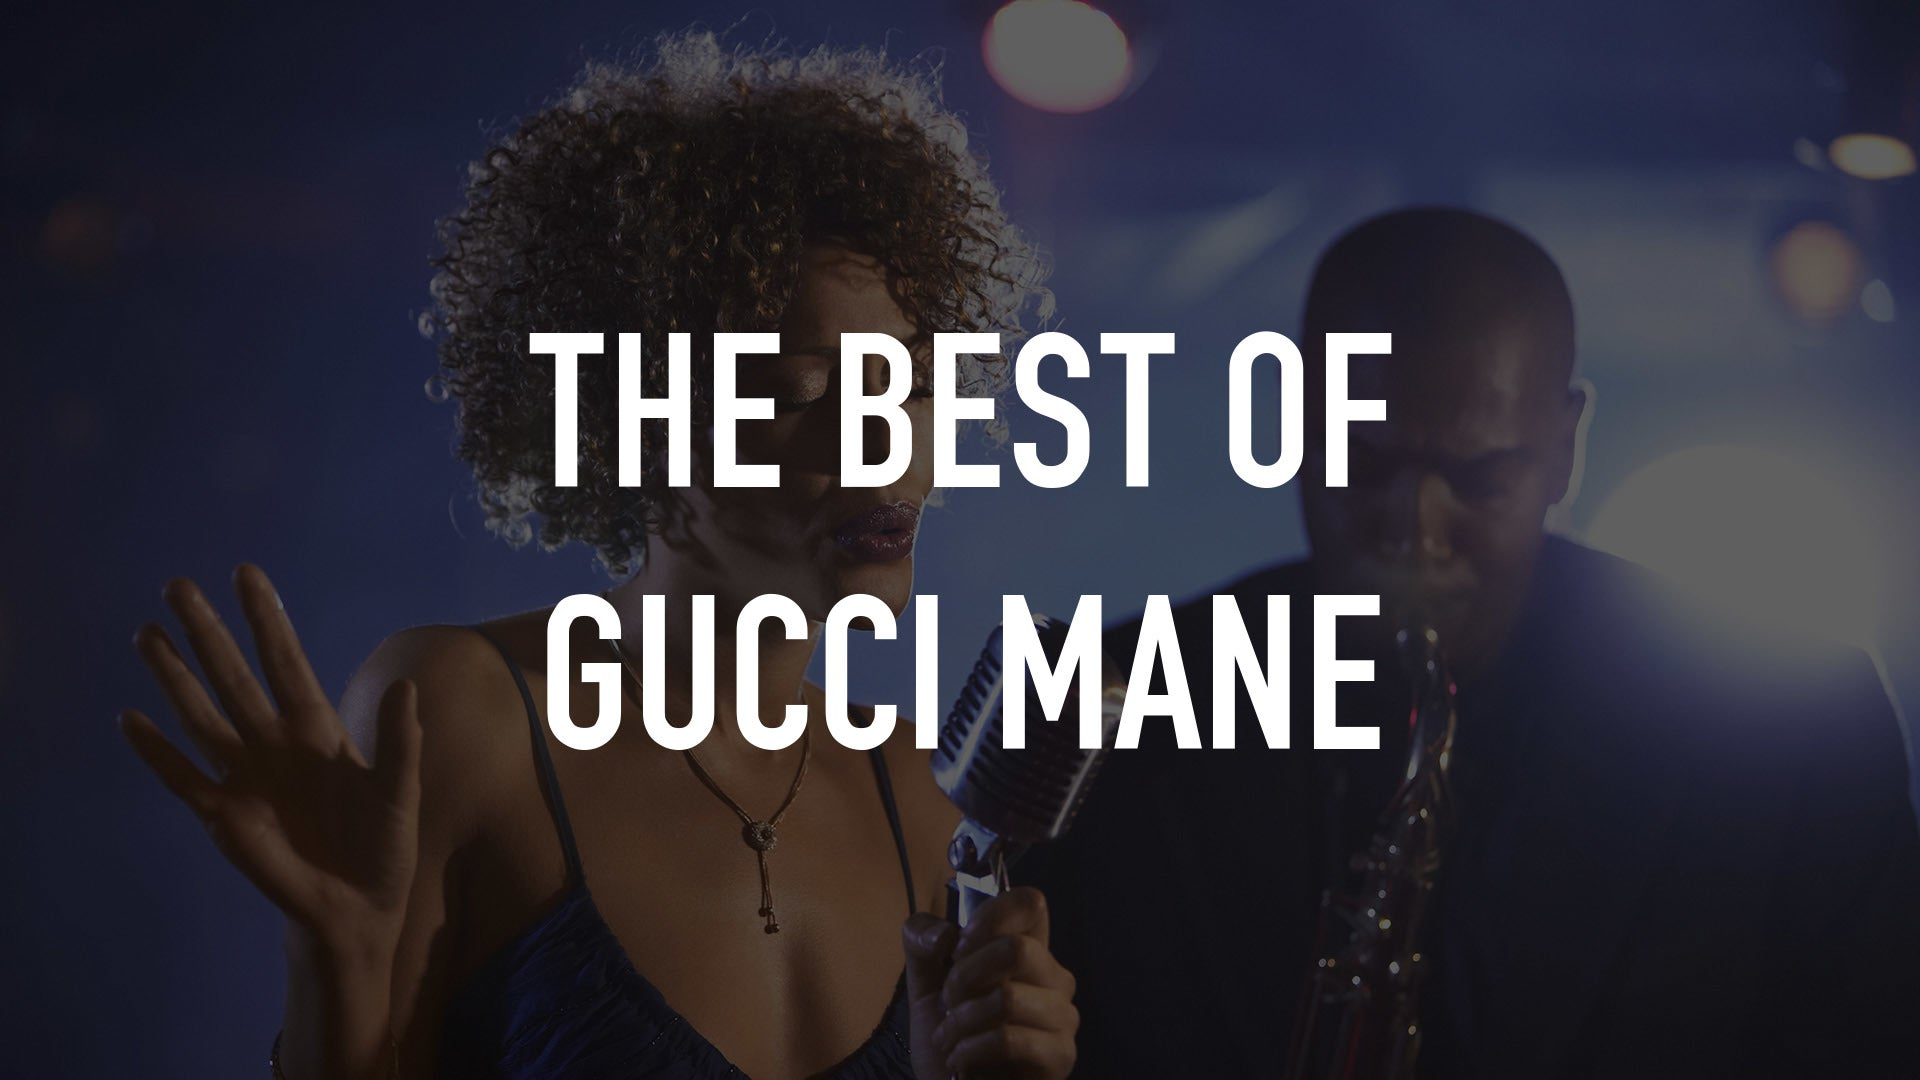 The Best of Gucci Mane